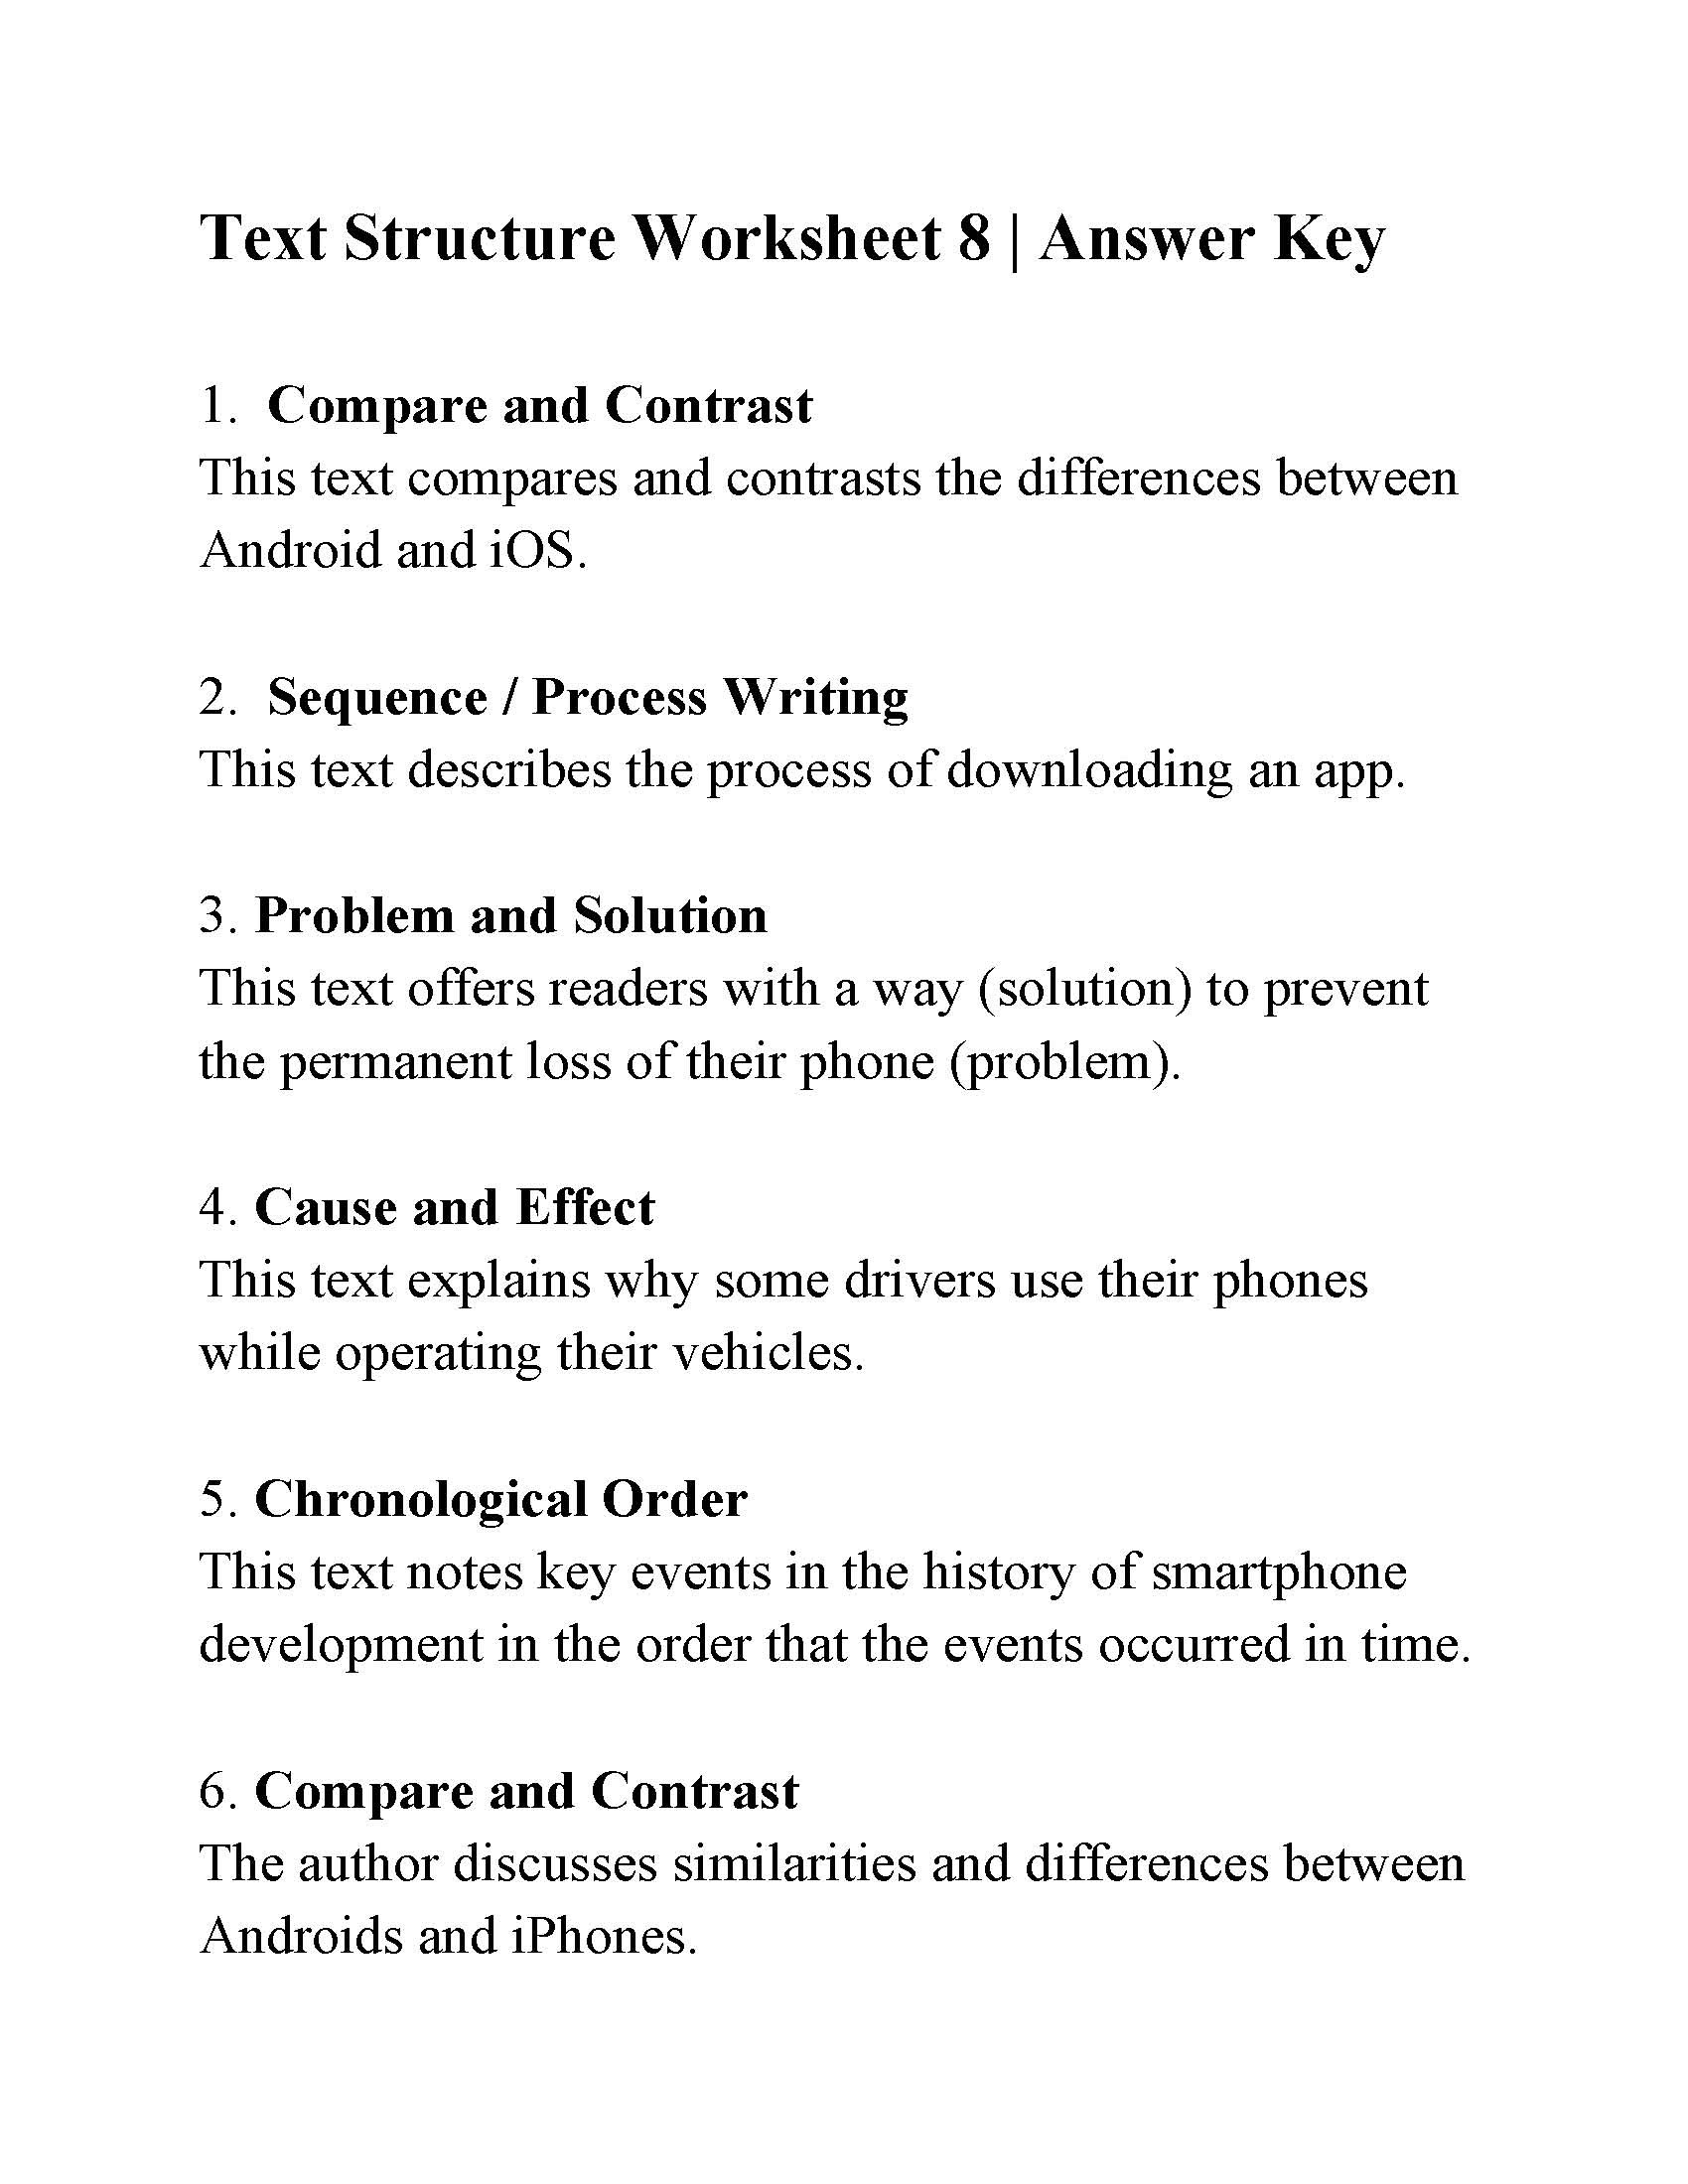 Text Structure 5th Grade Worksheets Text Structure Worksheet Answers Ereading Worksheets Number